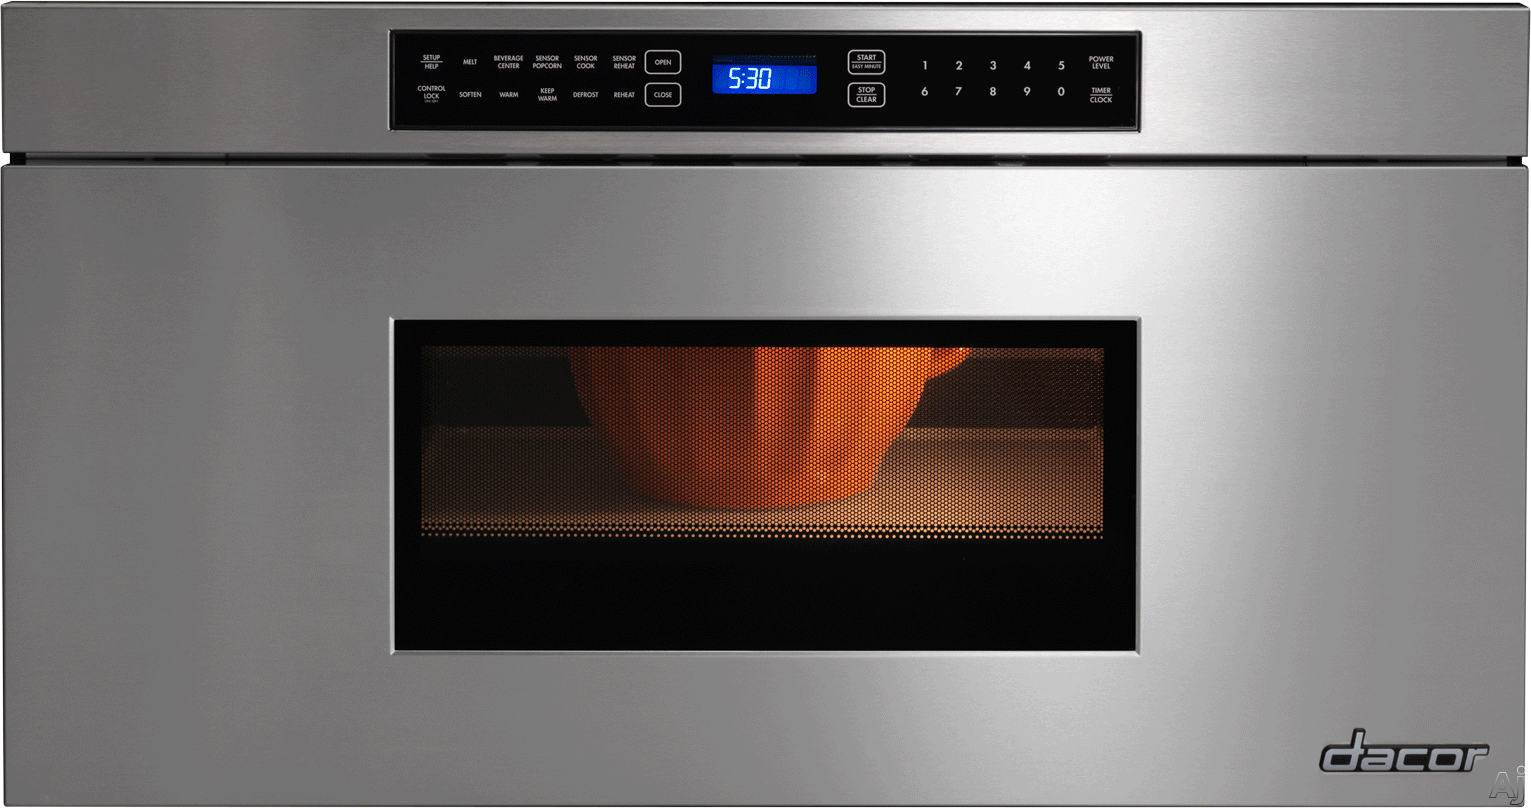 Dacor Renaissance RNMD30 30 Inch Microwave Drawer with 950 Watts, Automatic Drawer Opening, Beverage Center, 4 Automatic Cooking Sequences, Keep Warm Setting and Control Lock